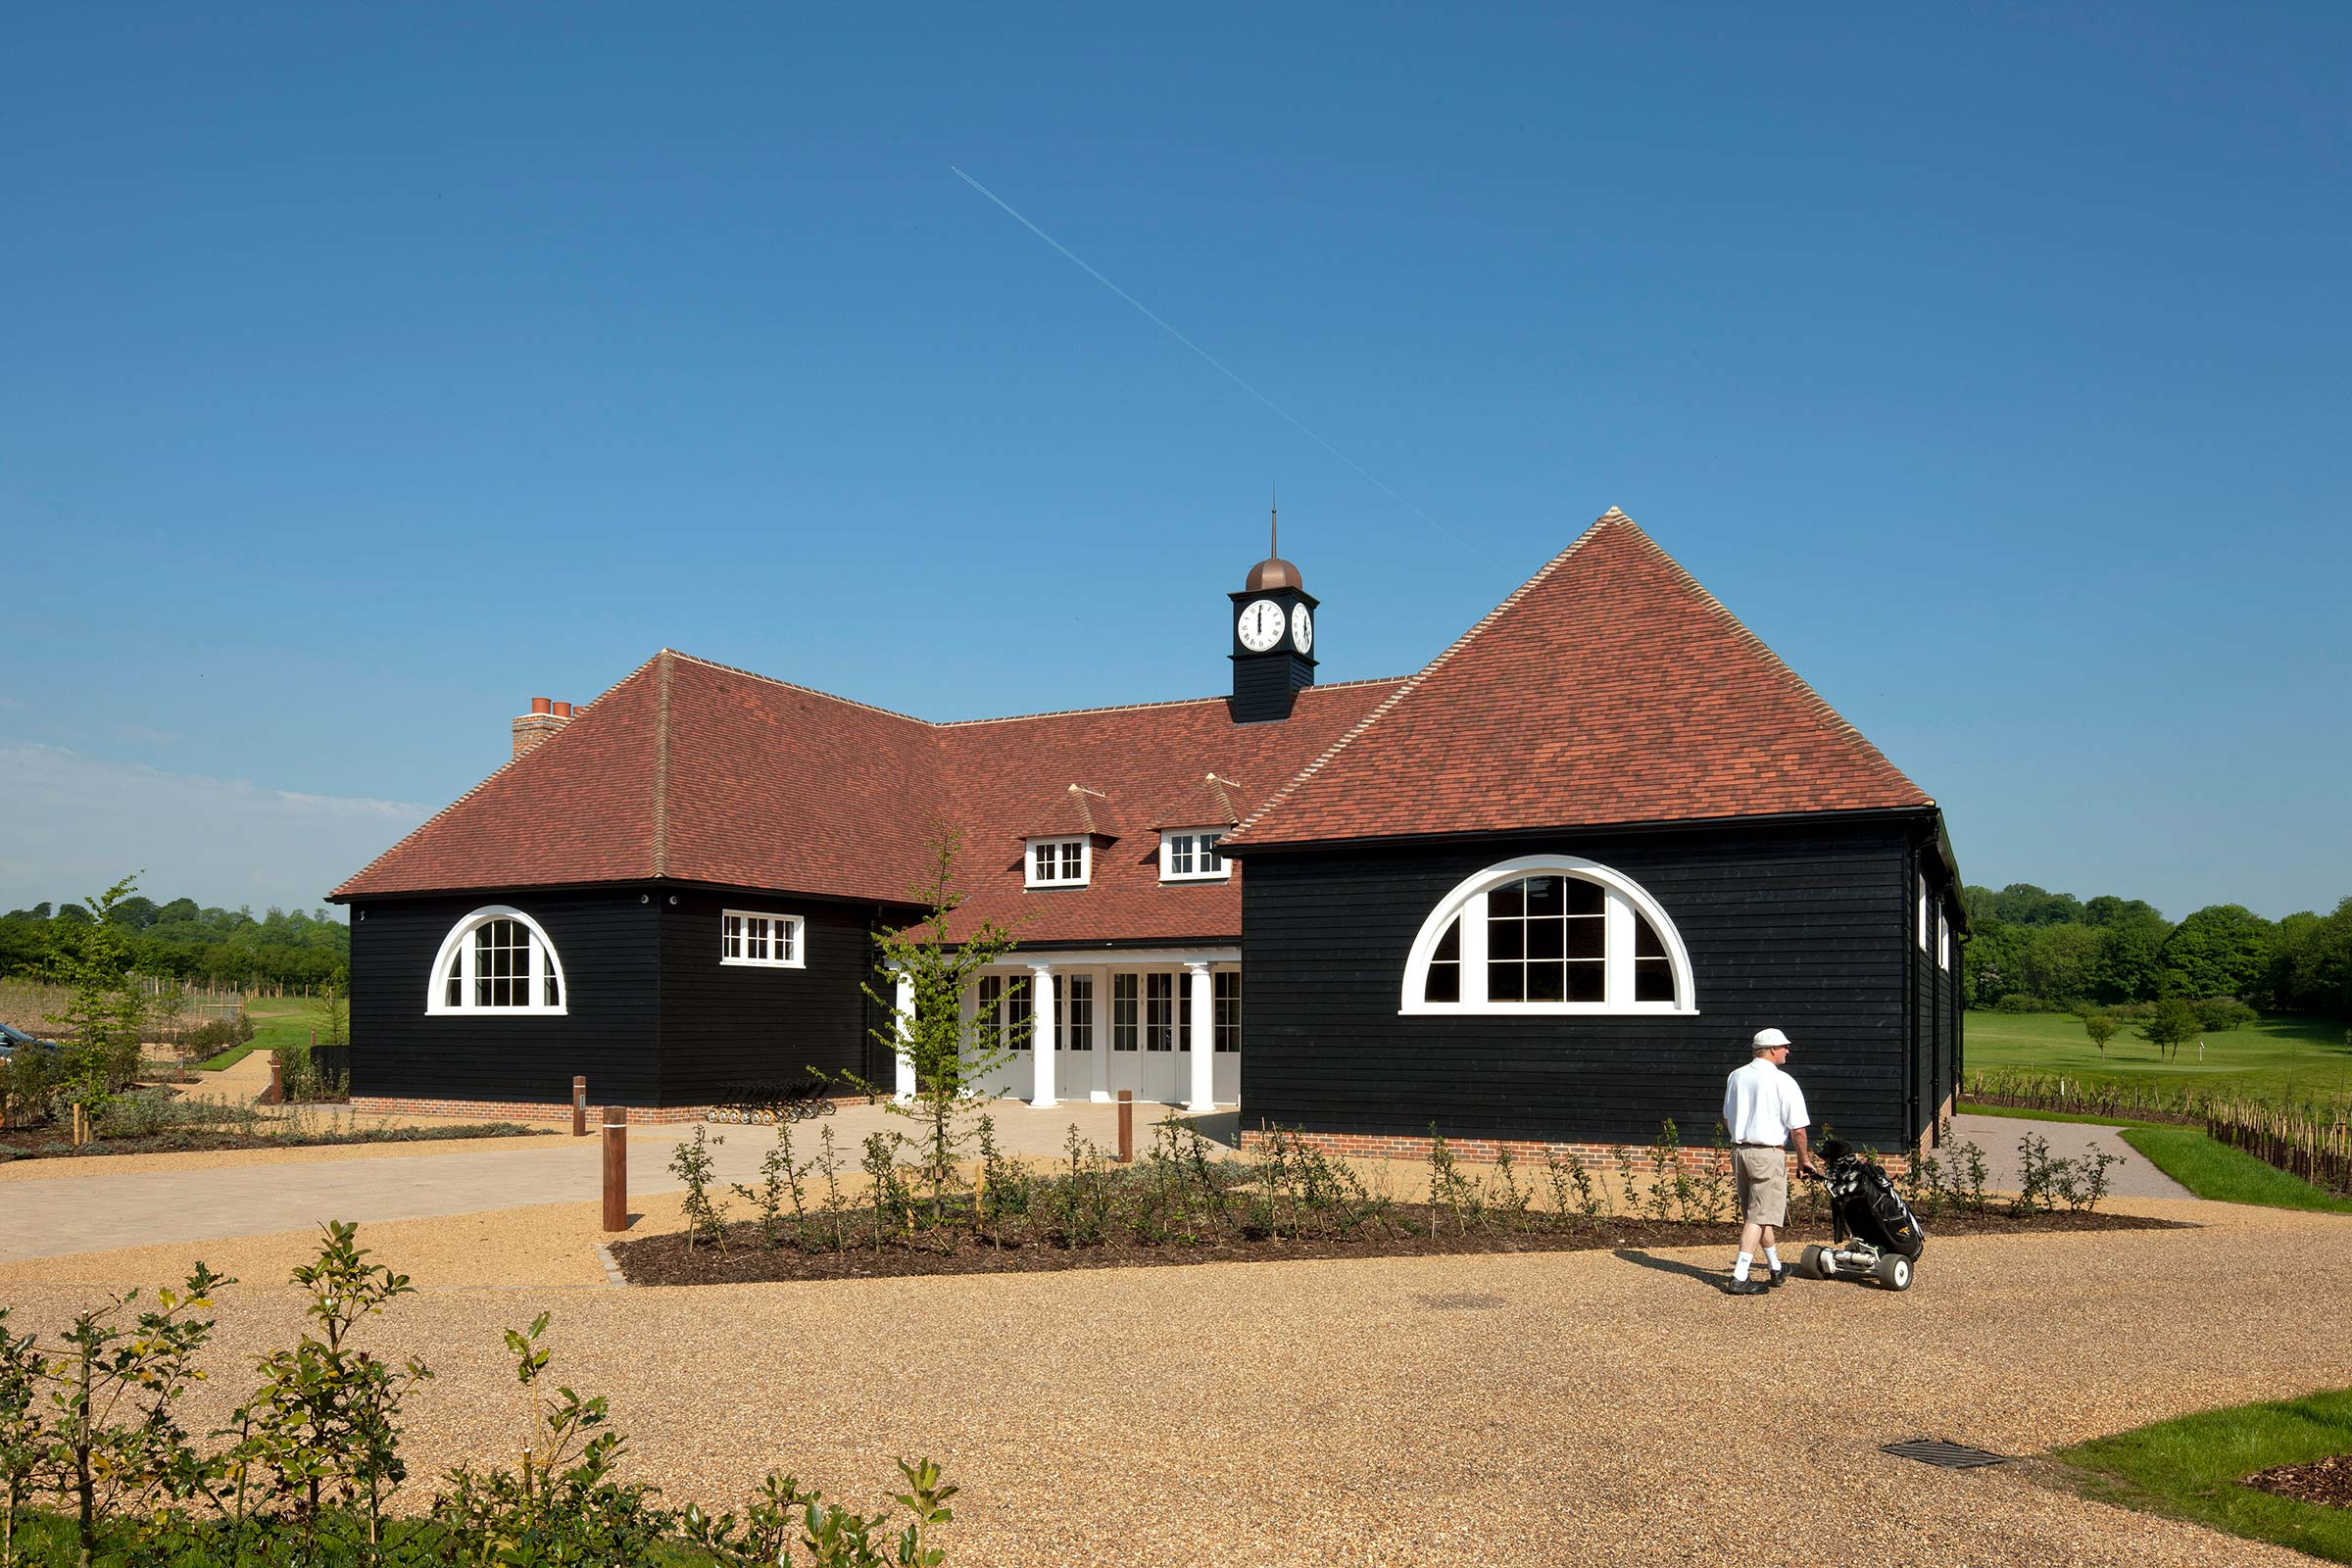 New clubhouse at Stocks Golf Club, Hertfordshire